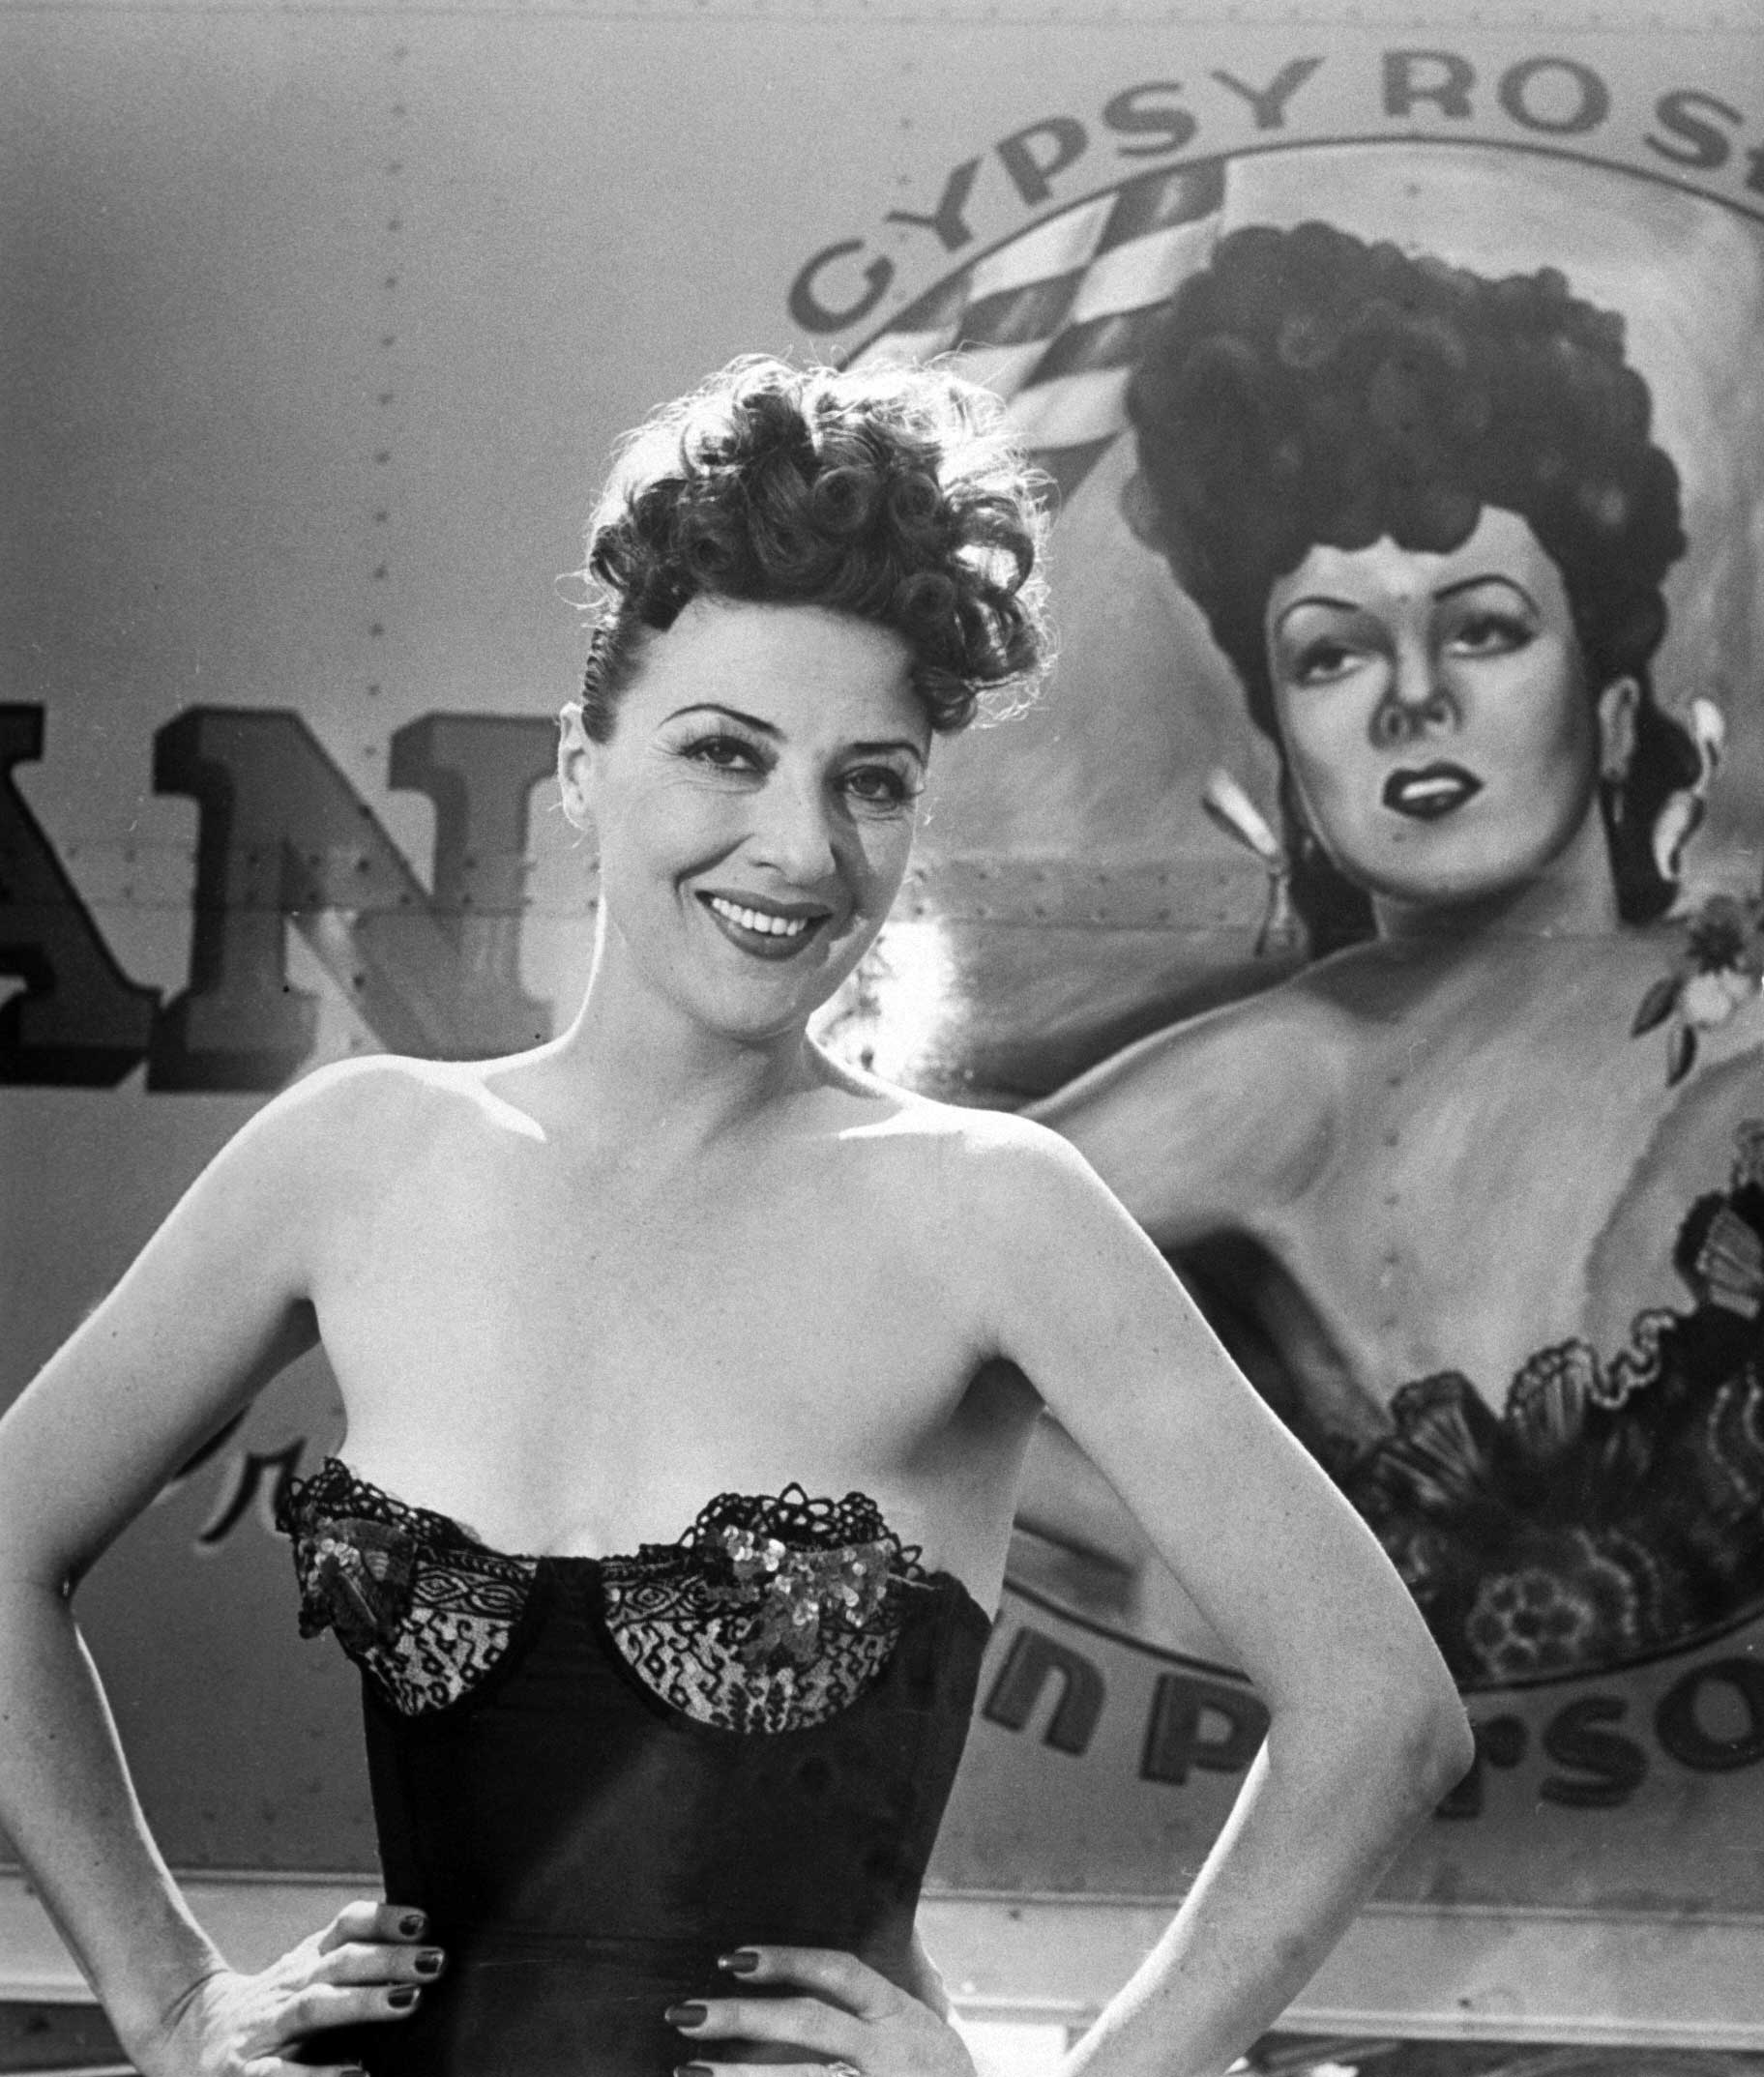 <b>Not published in LIFE.</b> Gypsy Rose Lee, 1949.